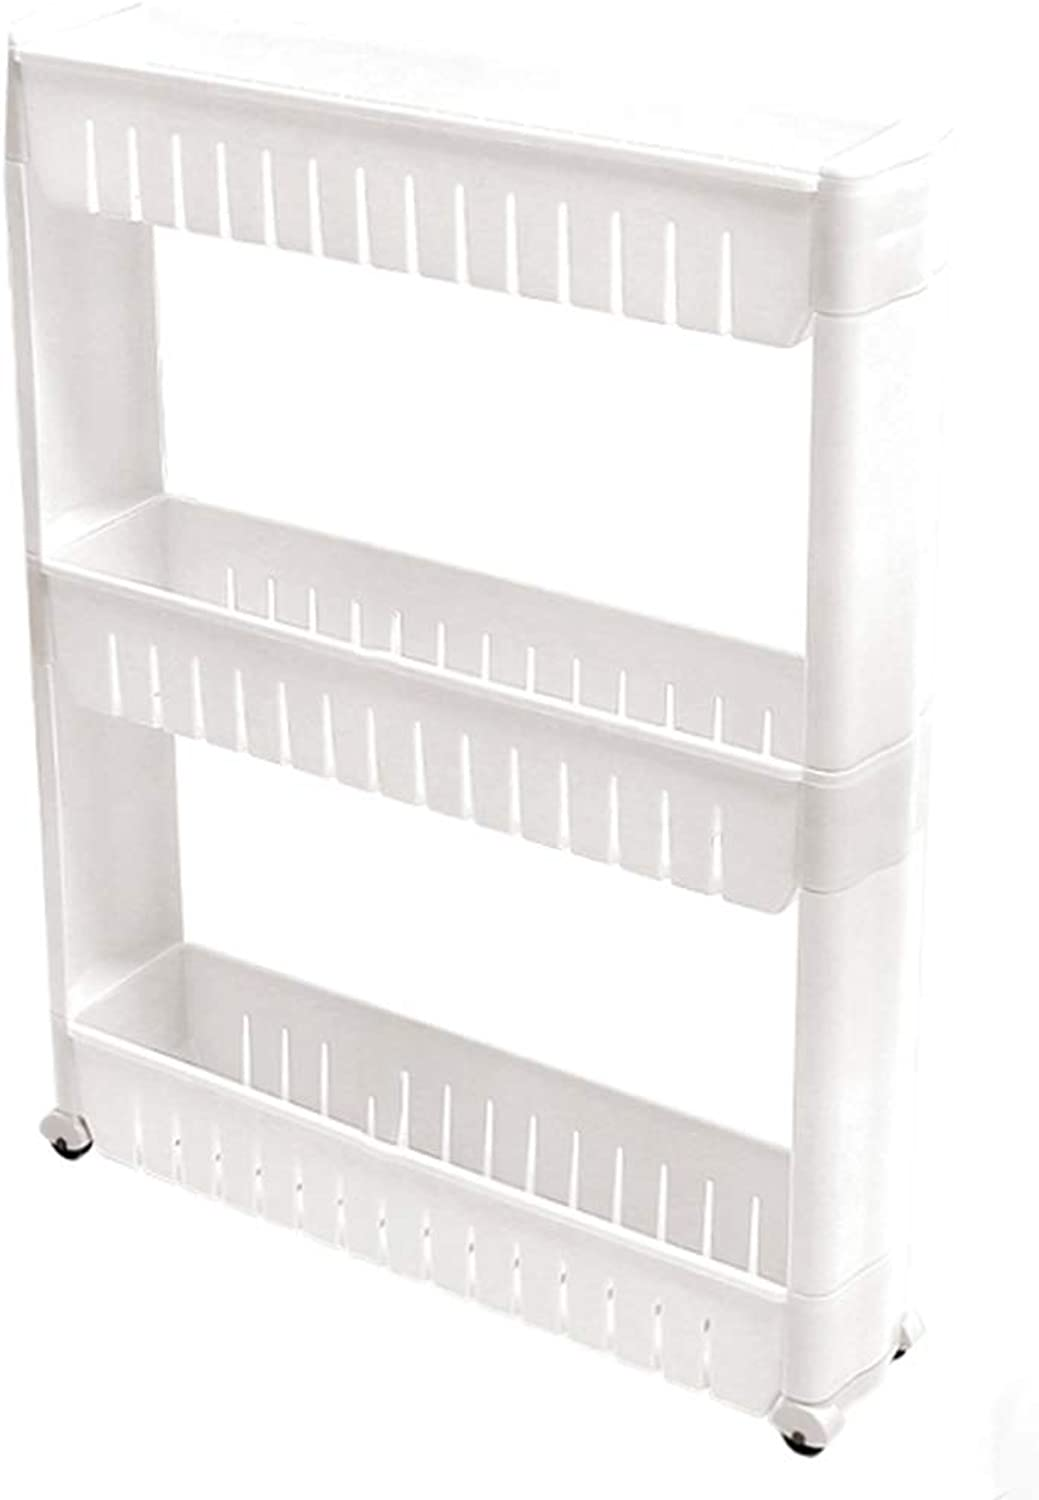 HUYP Thickened Quilted Rack Removable Bathroom Bathroom 3 Shelves Storage Rack (color   White)